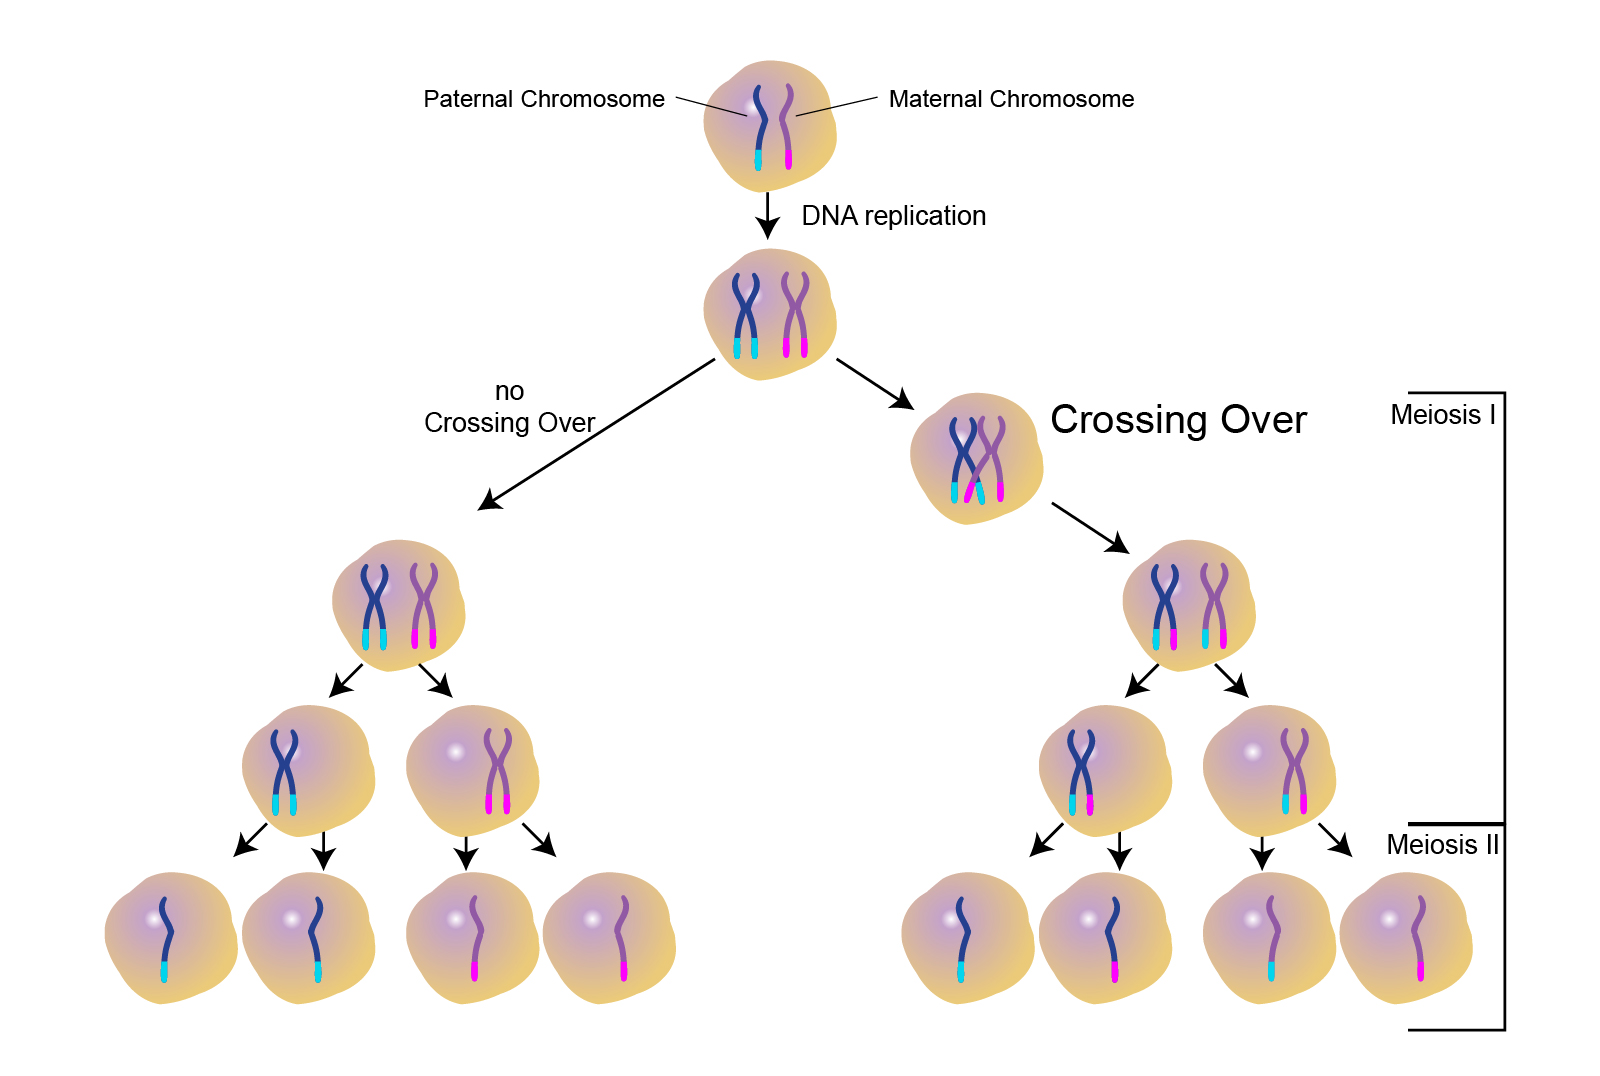 Genetic Makeup Of Meiosis